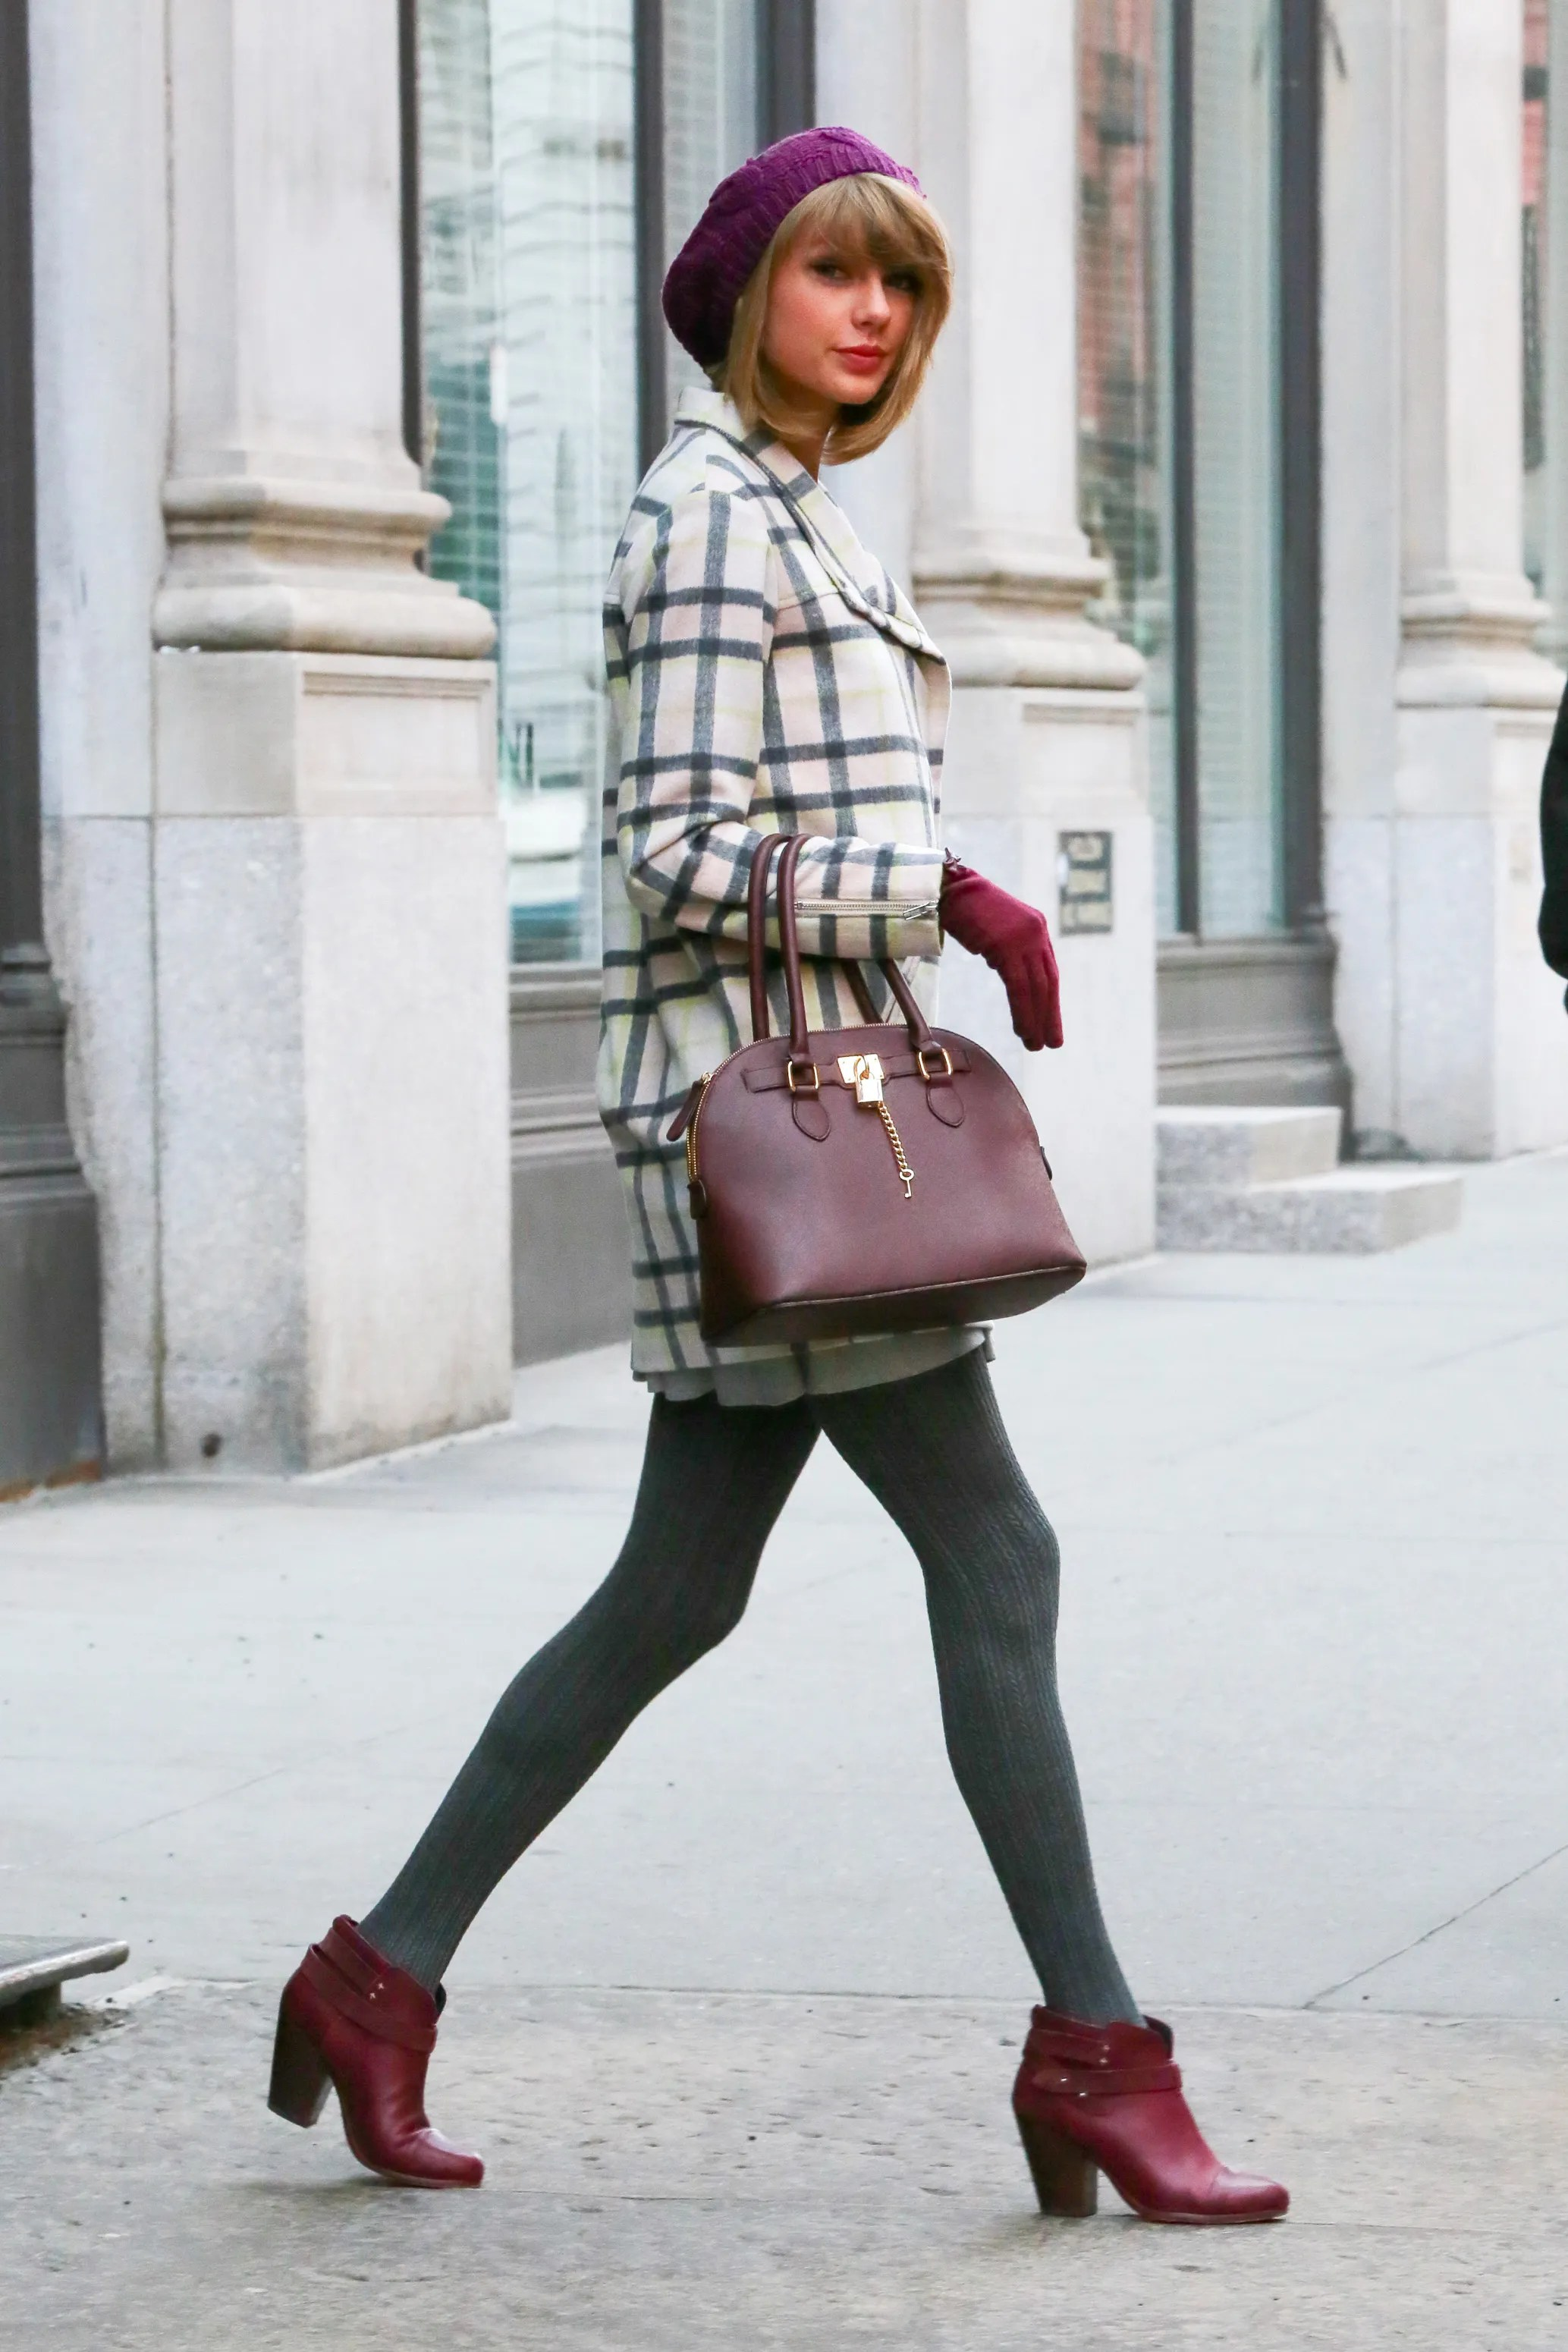 Fall Give Thanks Wallpaper Fall 2015 Fashion Trends Celebrity Street Style Taylor